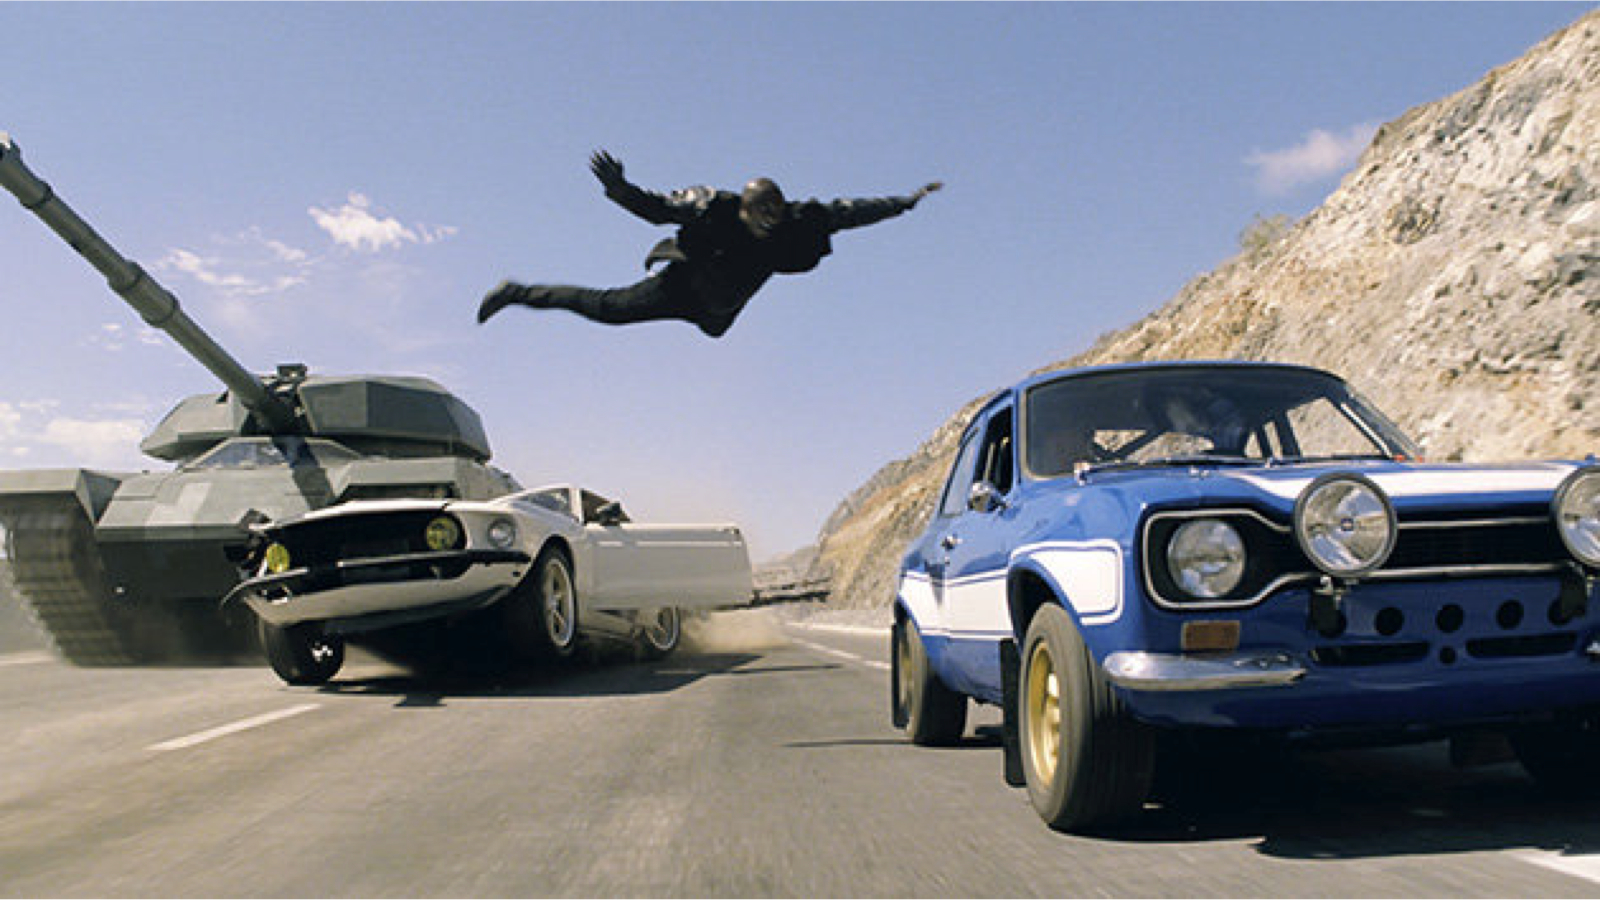 Fast-and-furious-6-movie-Ford-MK-and-Mustang.jpg